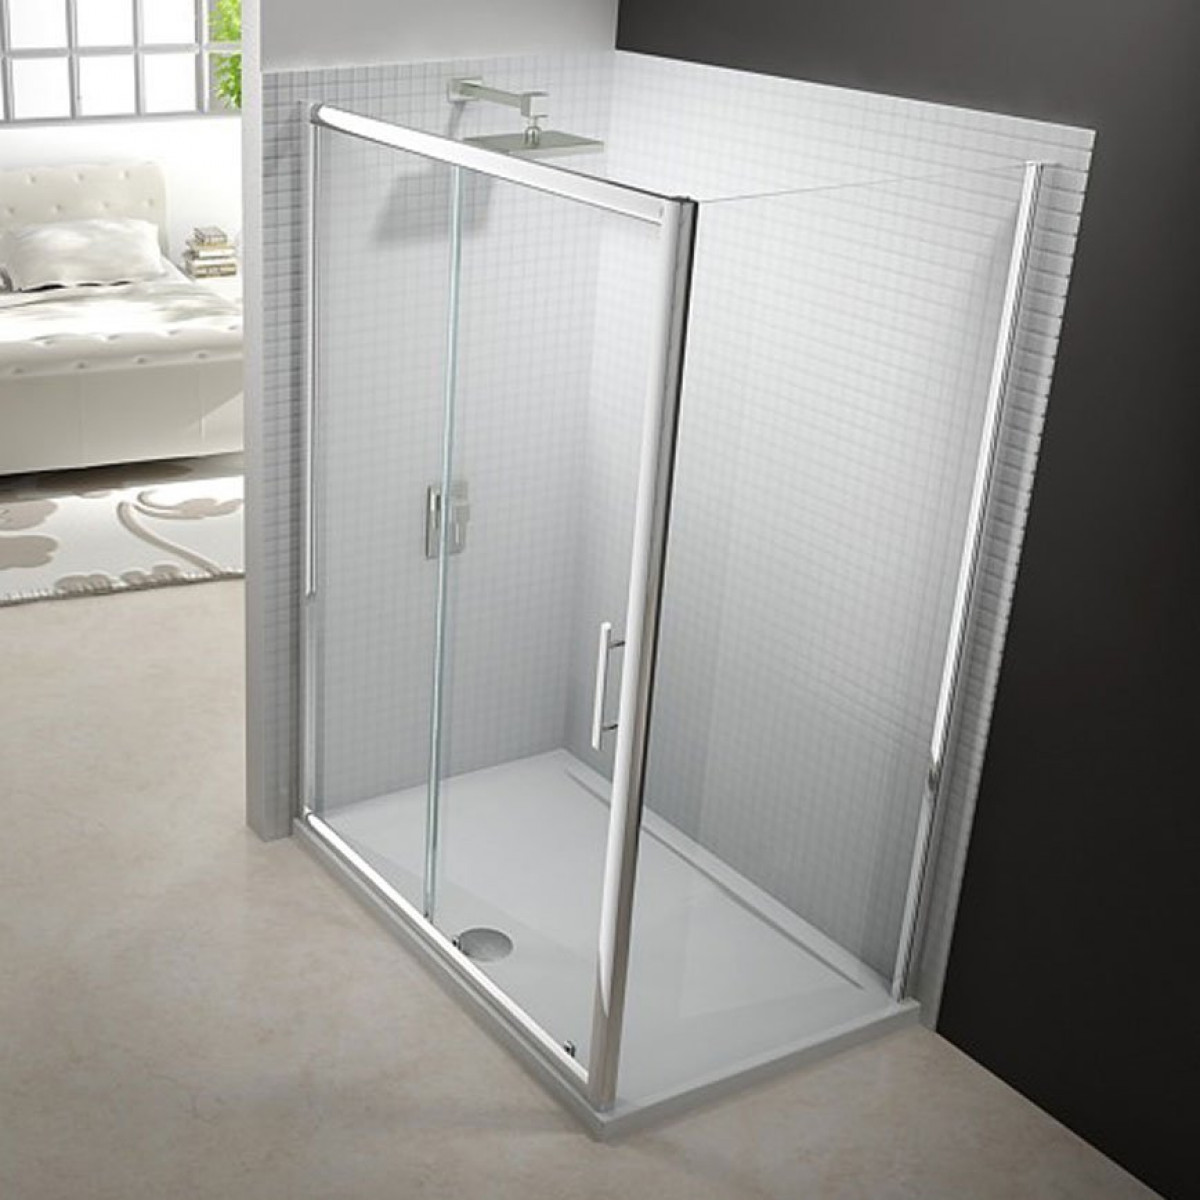 Merlyn 6 series 1200mm sliding shower door for 1200mm shower door sliding